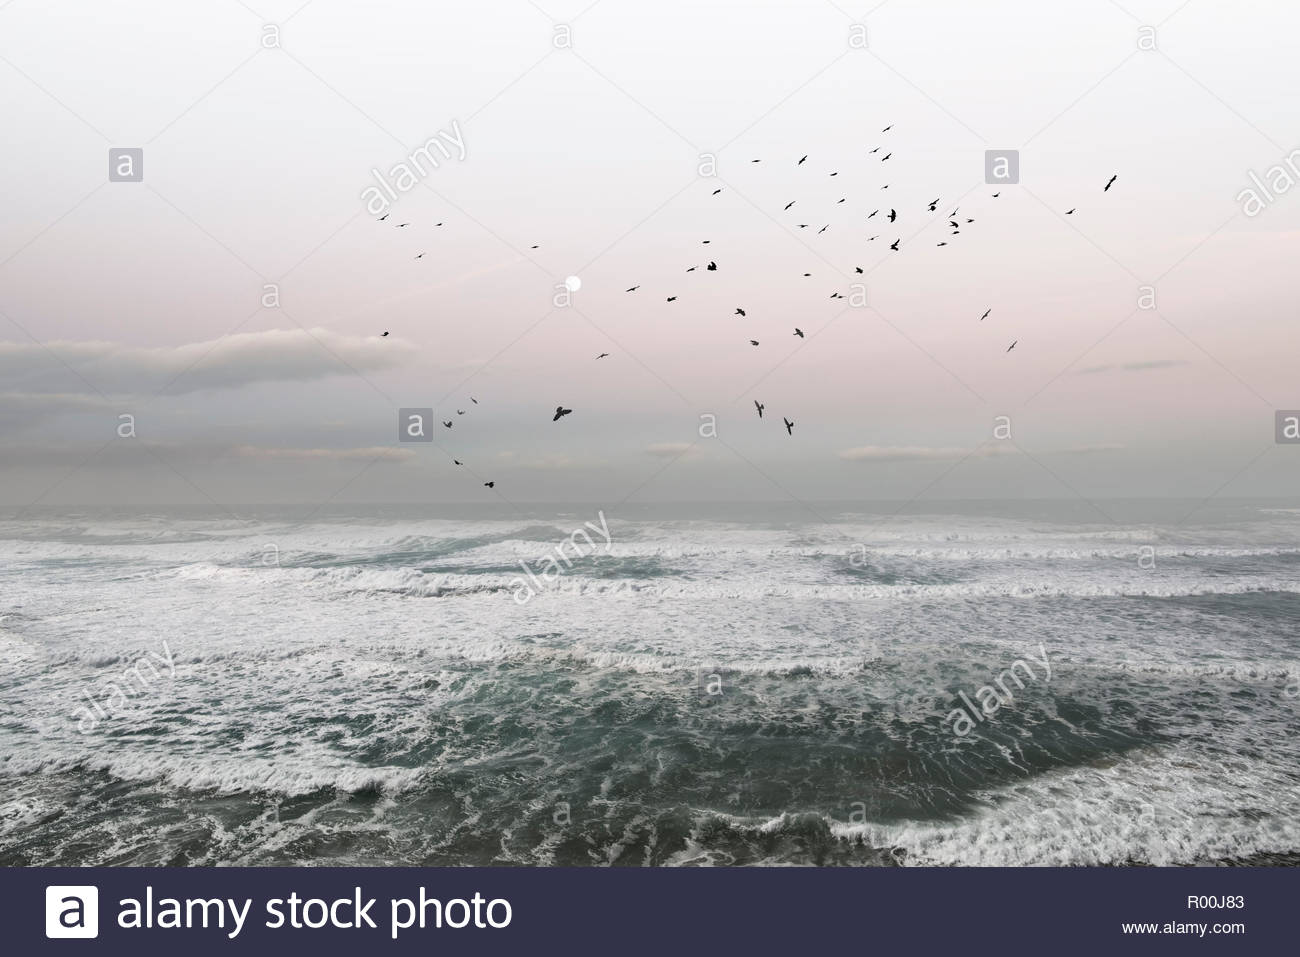 Flock of birds flying over sea in Portugal Stock Photo